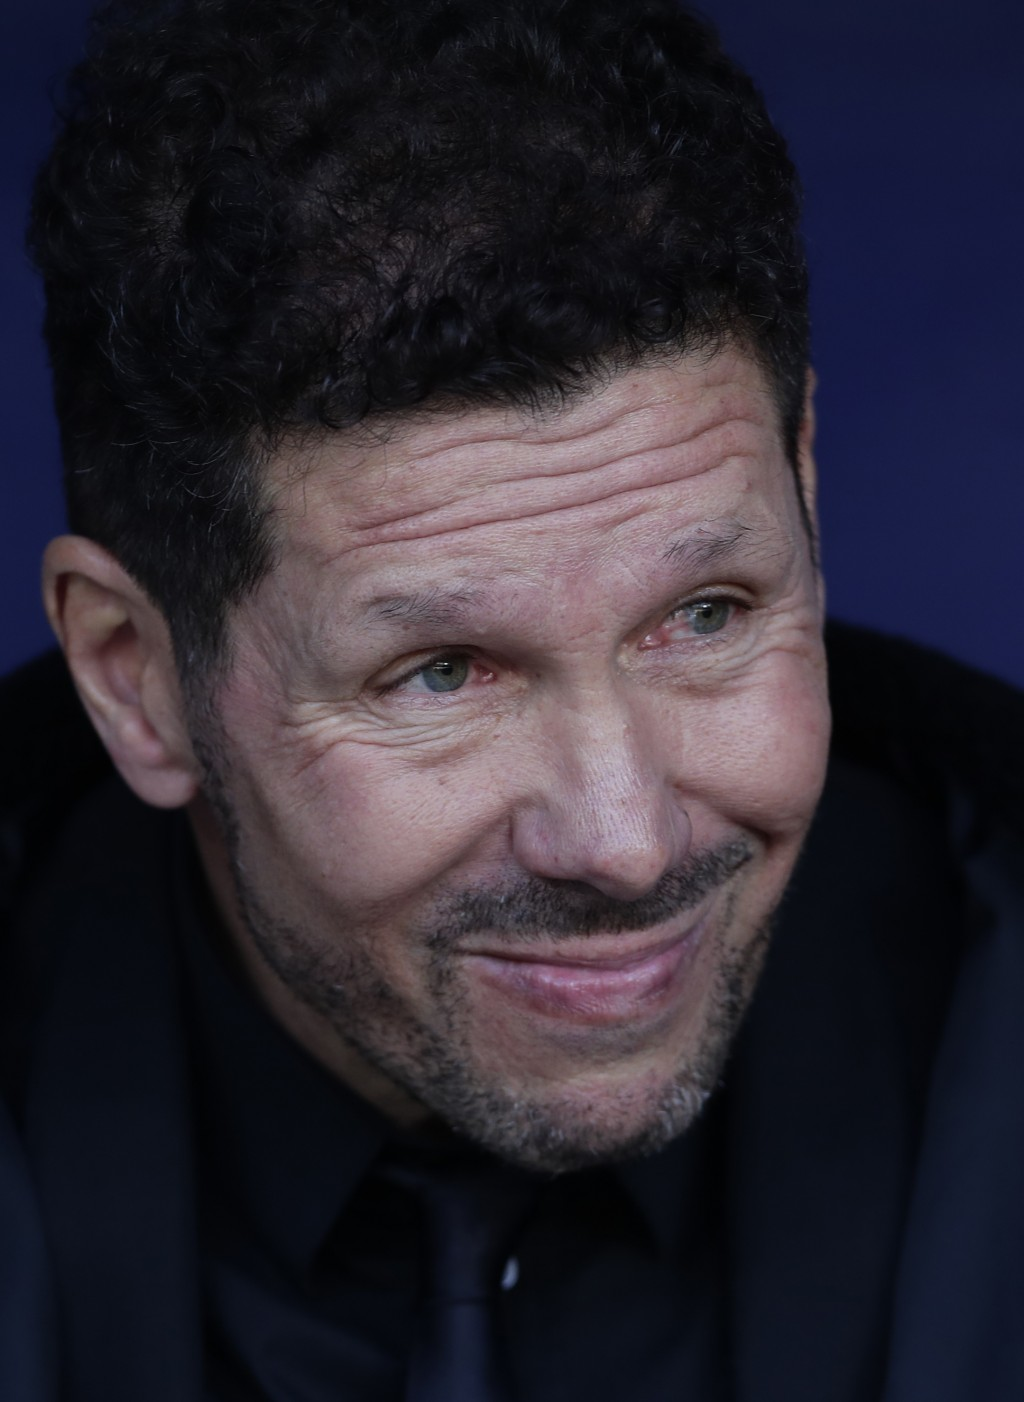 Atletico Madrid's head coach Diego Simeone waits for the start of a Spanish La Liga soccer match between Atletico Madrid and Real Madrid at the Metrop...